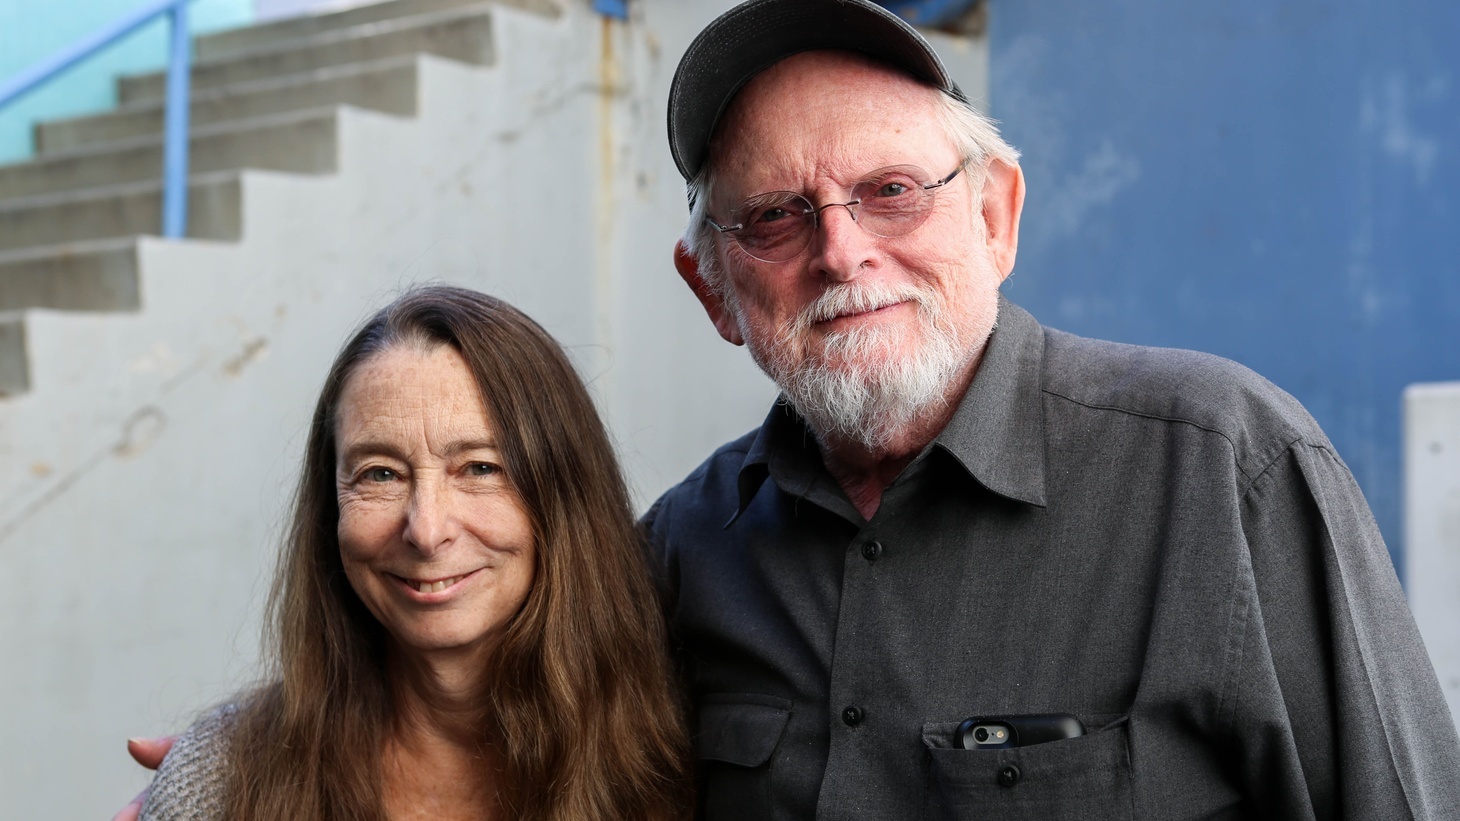 Two brilliant writers talk about a brilliant writer: Ann Beattie and Richard Bausch discuss the haunted dreamscapes of the short fiction of Peter Taylor.